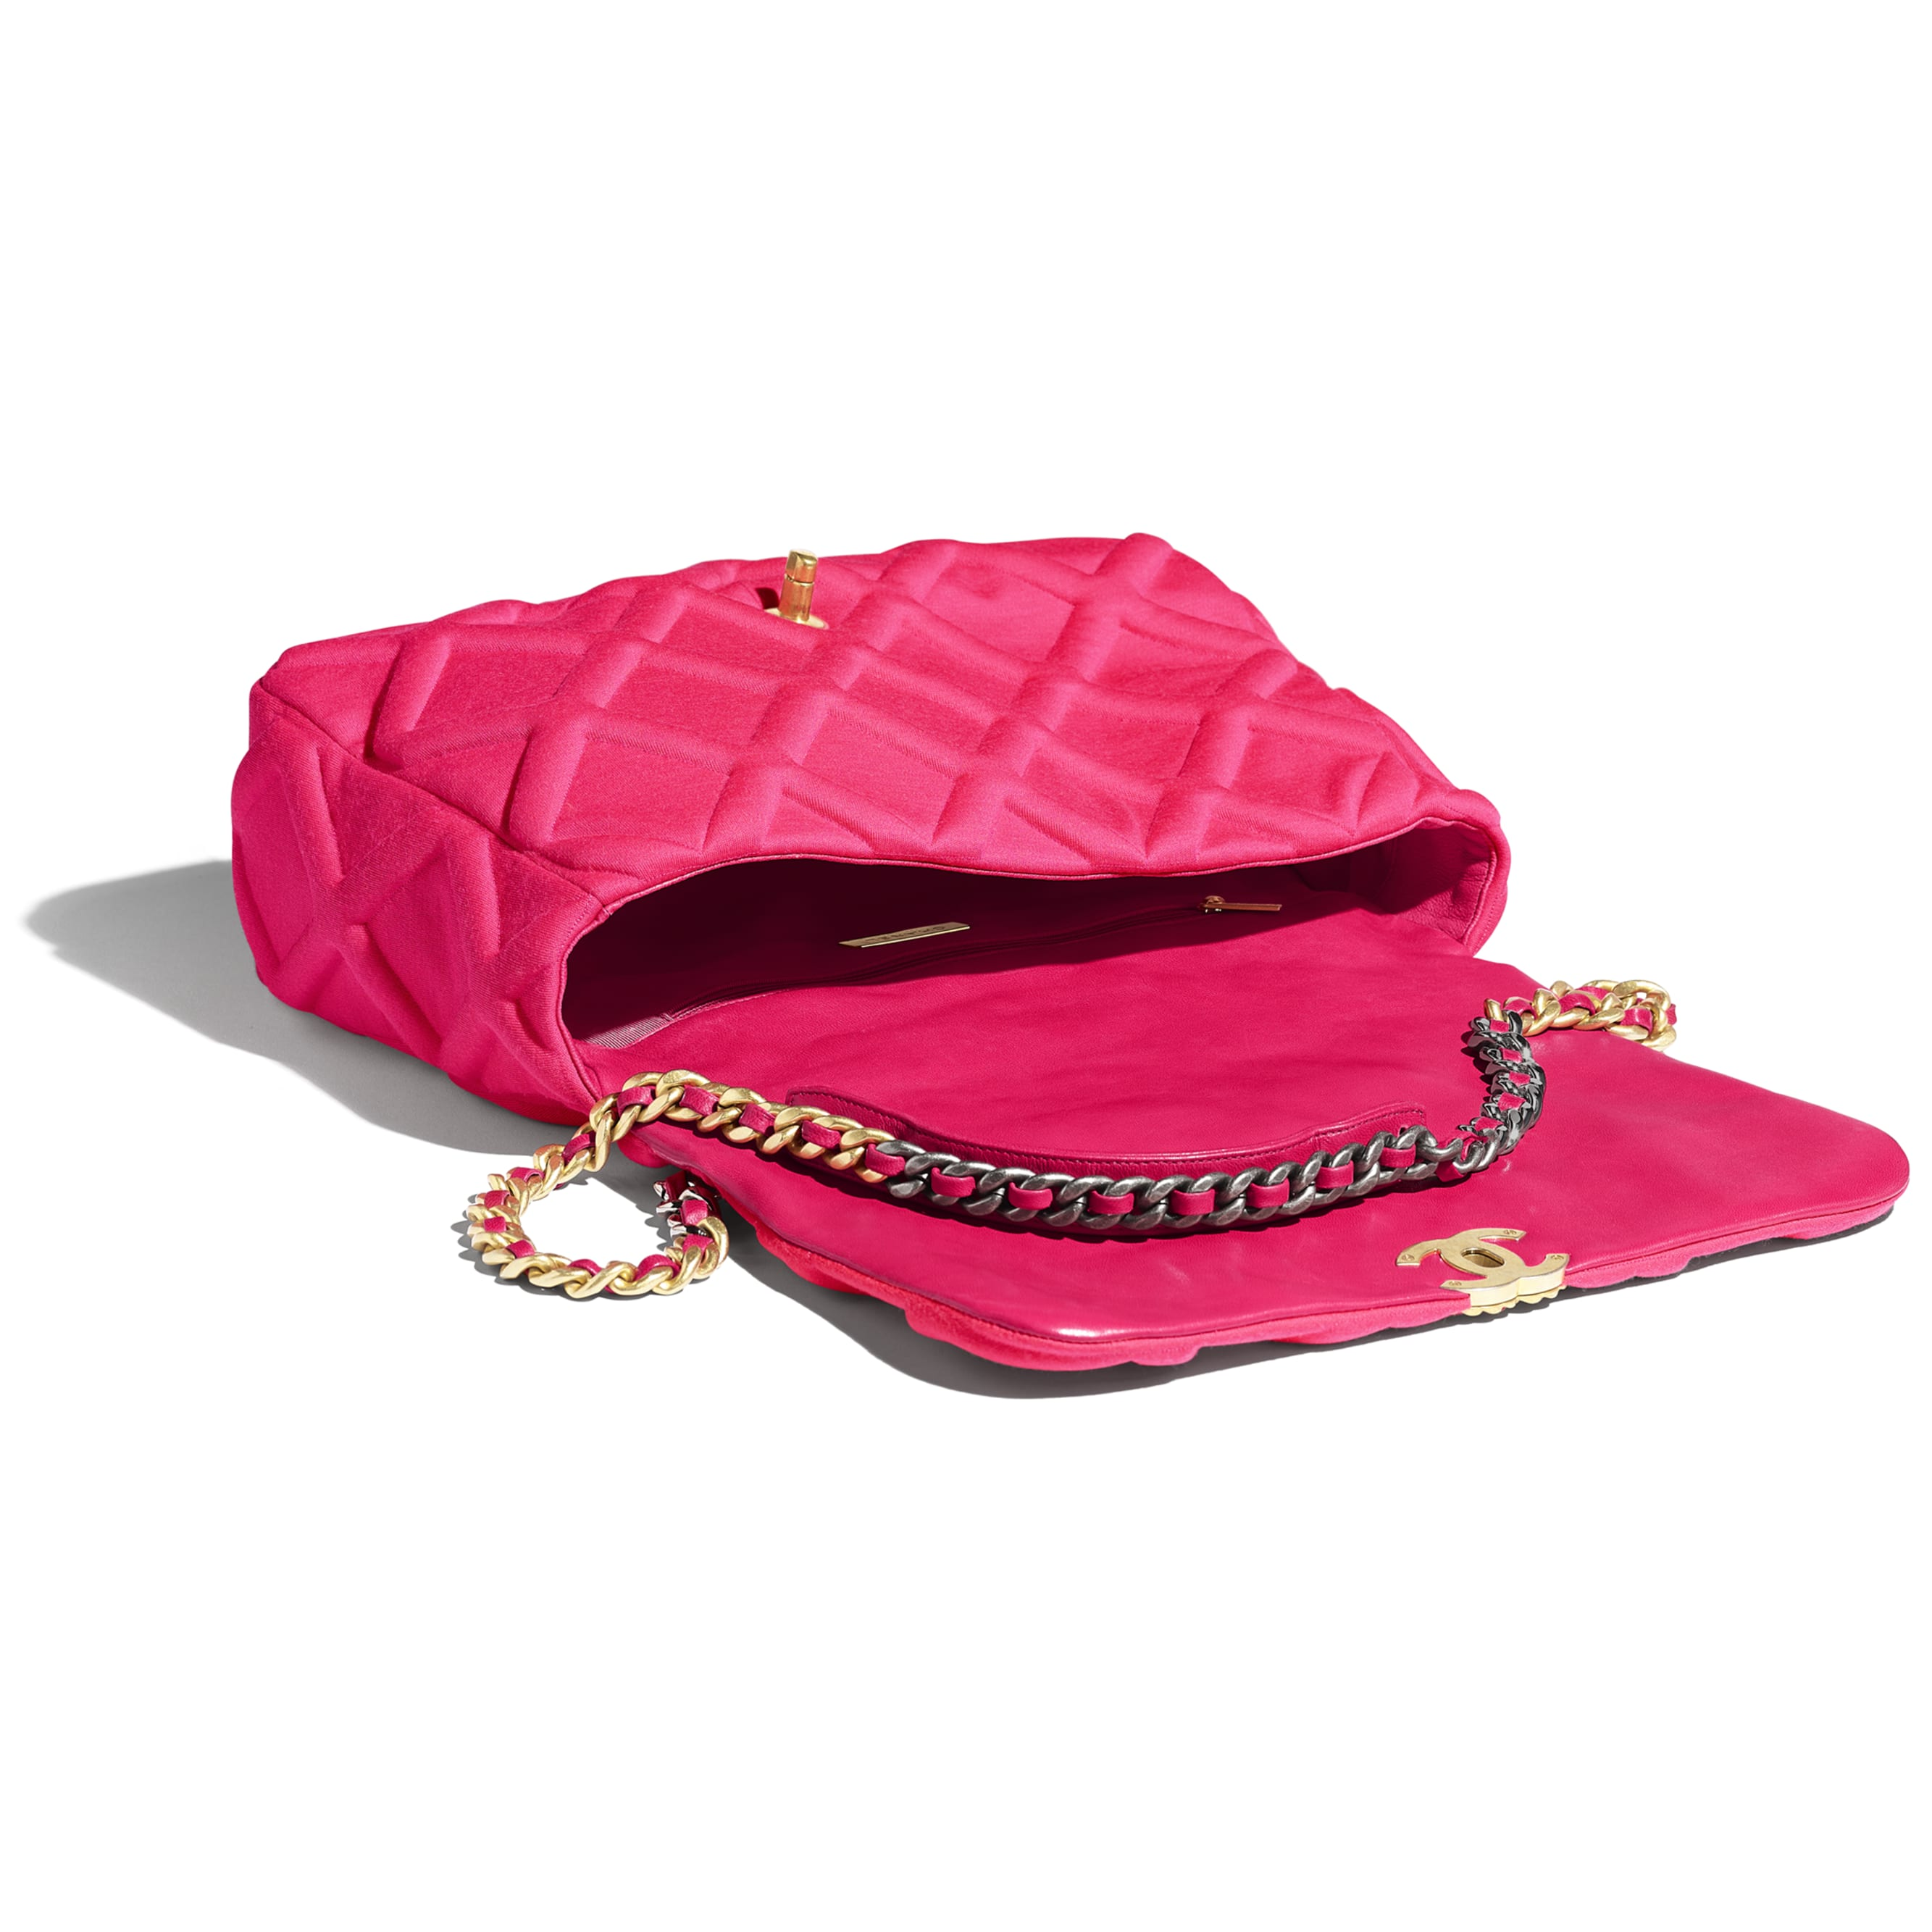 CHANEL 19 Maxi Flap Bag - Pink - Jersey, Gold-Tone, Silver-Tone & Ruthenium-Finish Metal - Other view - see standard sized version